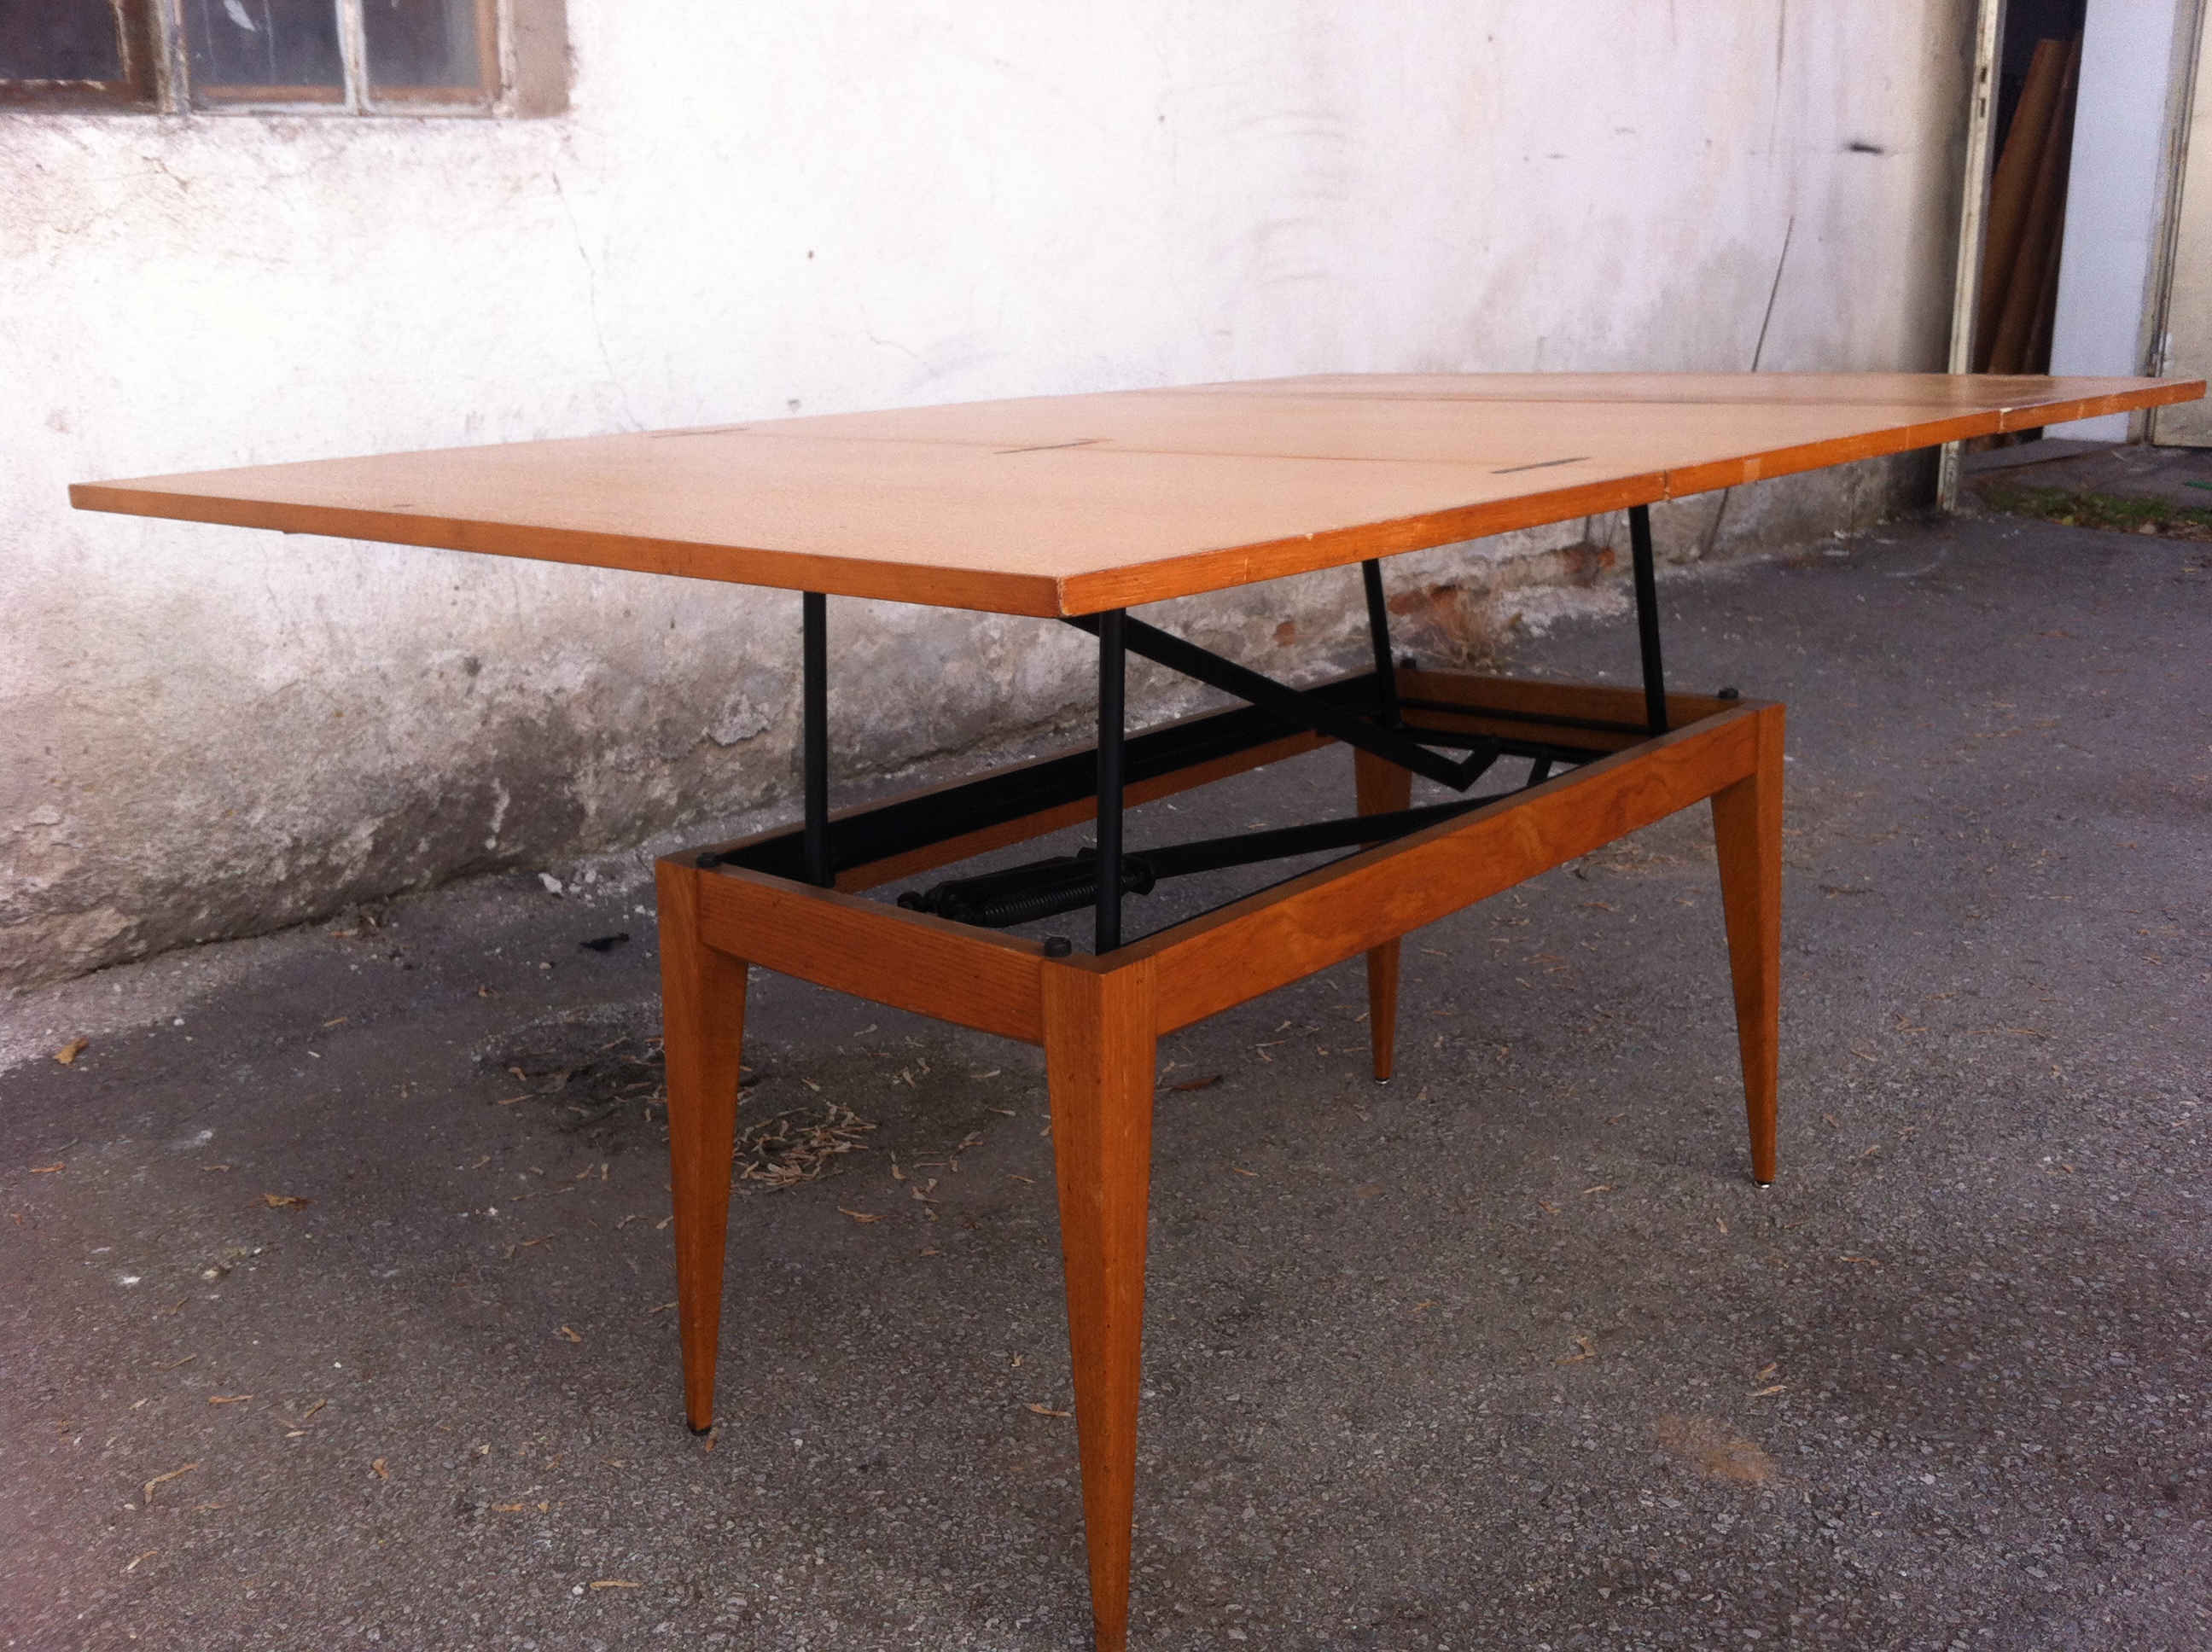 Wooden Countertops And Legs, Metal Expandable Structure. The Table Rises To  A Height And The Table Stretches To Three Times. Very Good Condition. 1960s.